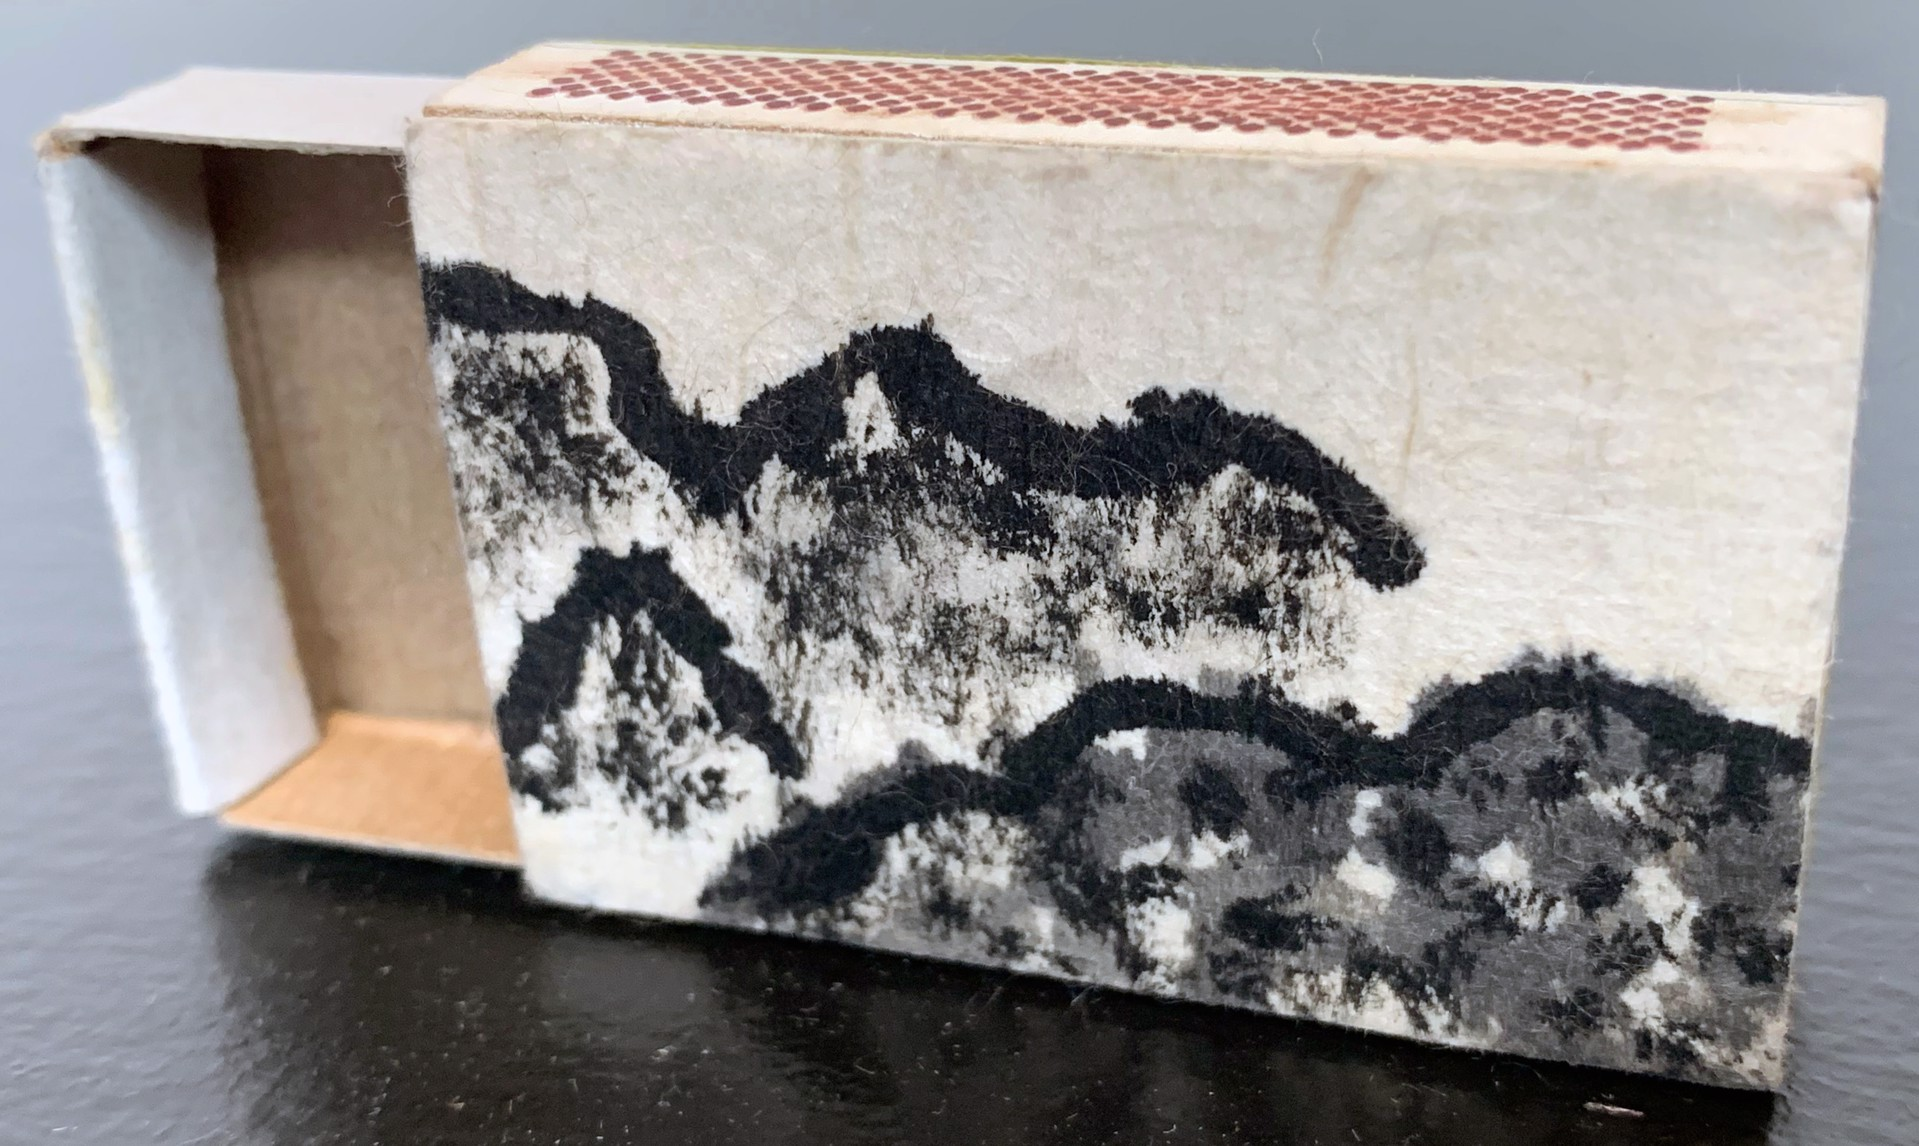 Mountain Visions matchbox 1 by Donald Cole